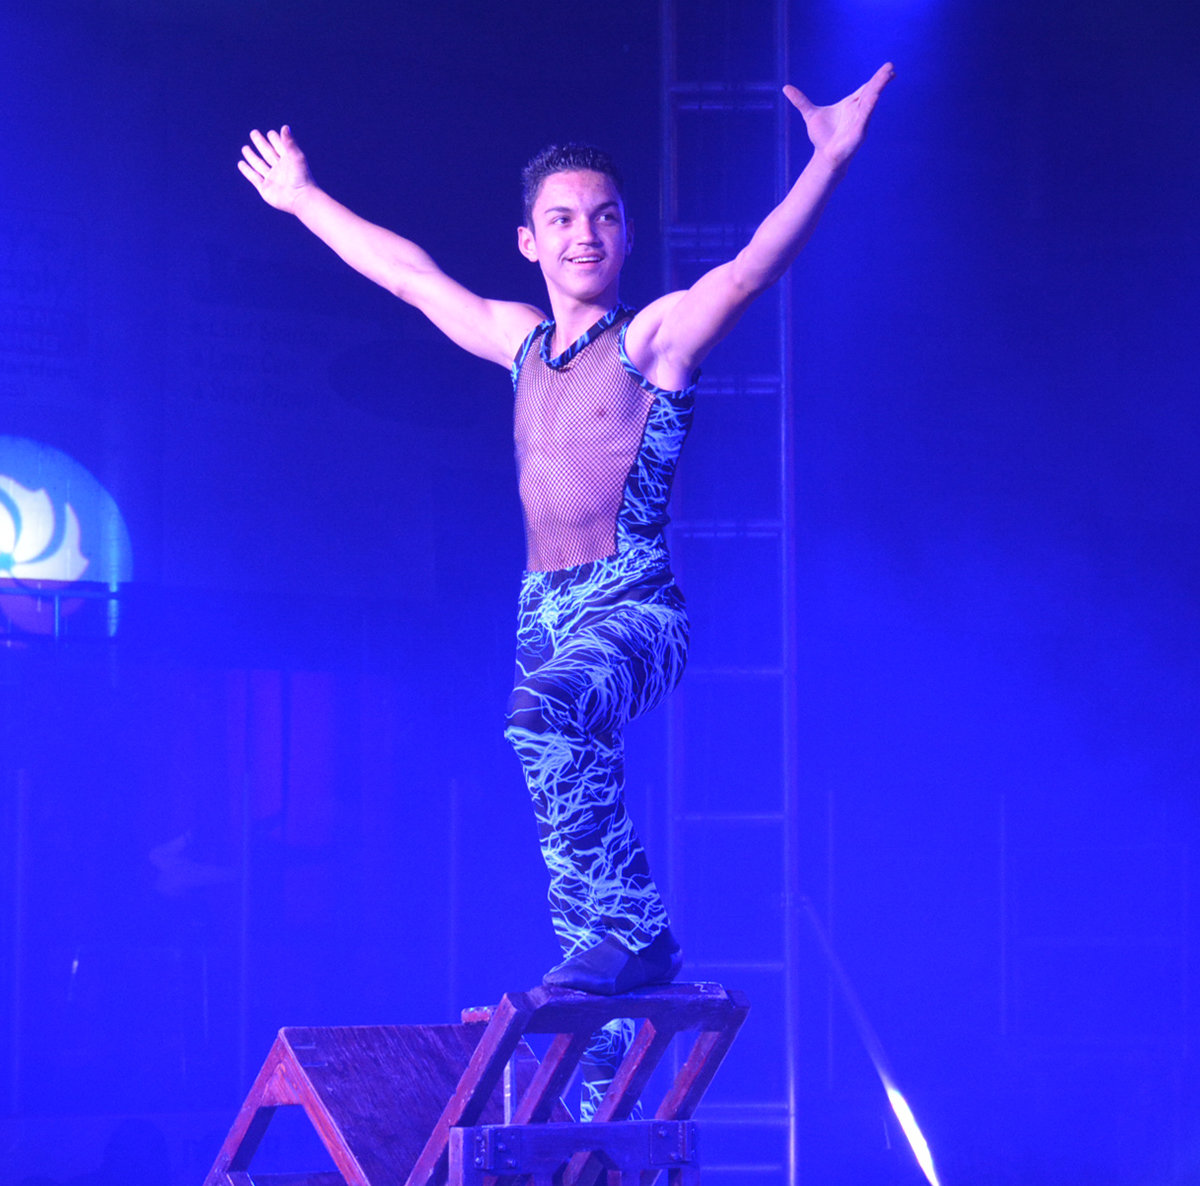 DON'T TRY THIS AT HOME — The Human Pyramid stacked chair after chair after chair on top of each other steadying himself atop each one as the stack got higher at the Garden Brothers Circus spectacular on Saturday, April 27 in the Clinton Arena. The 90-minute show included concert style lighting and music with over 60 performers from 18 countries. Garden Brothers Circus is celebrating 100 years of family entertainment with shows throughout North America.